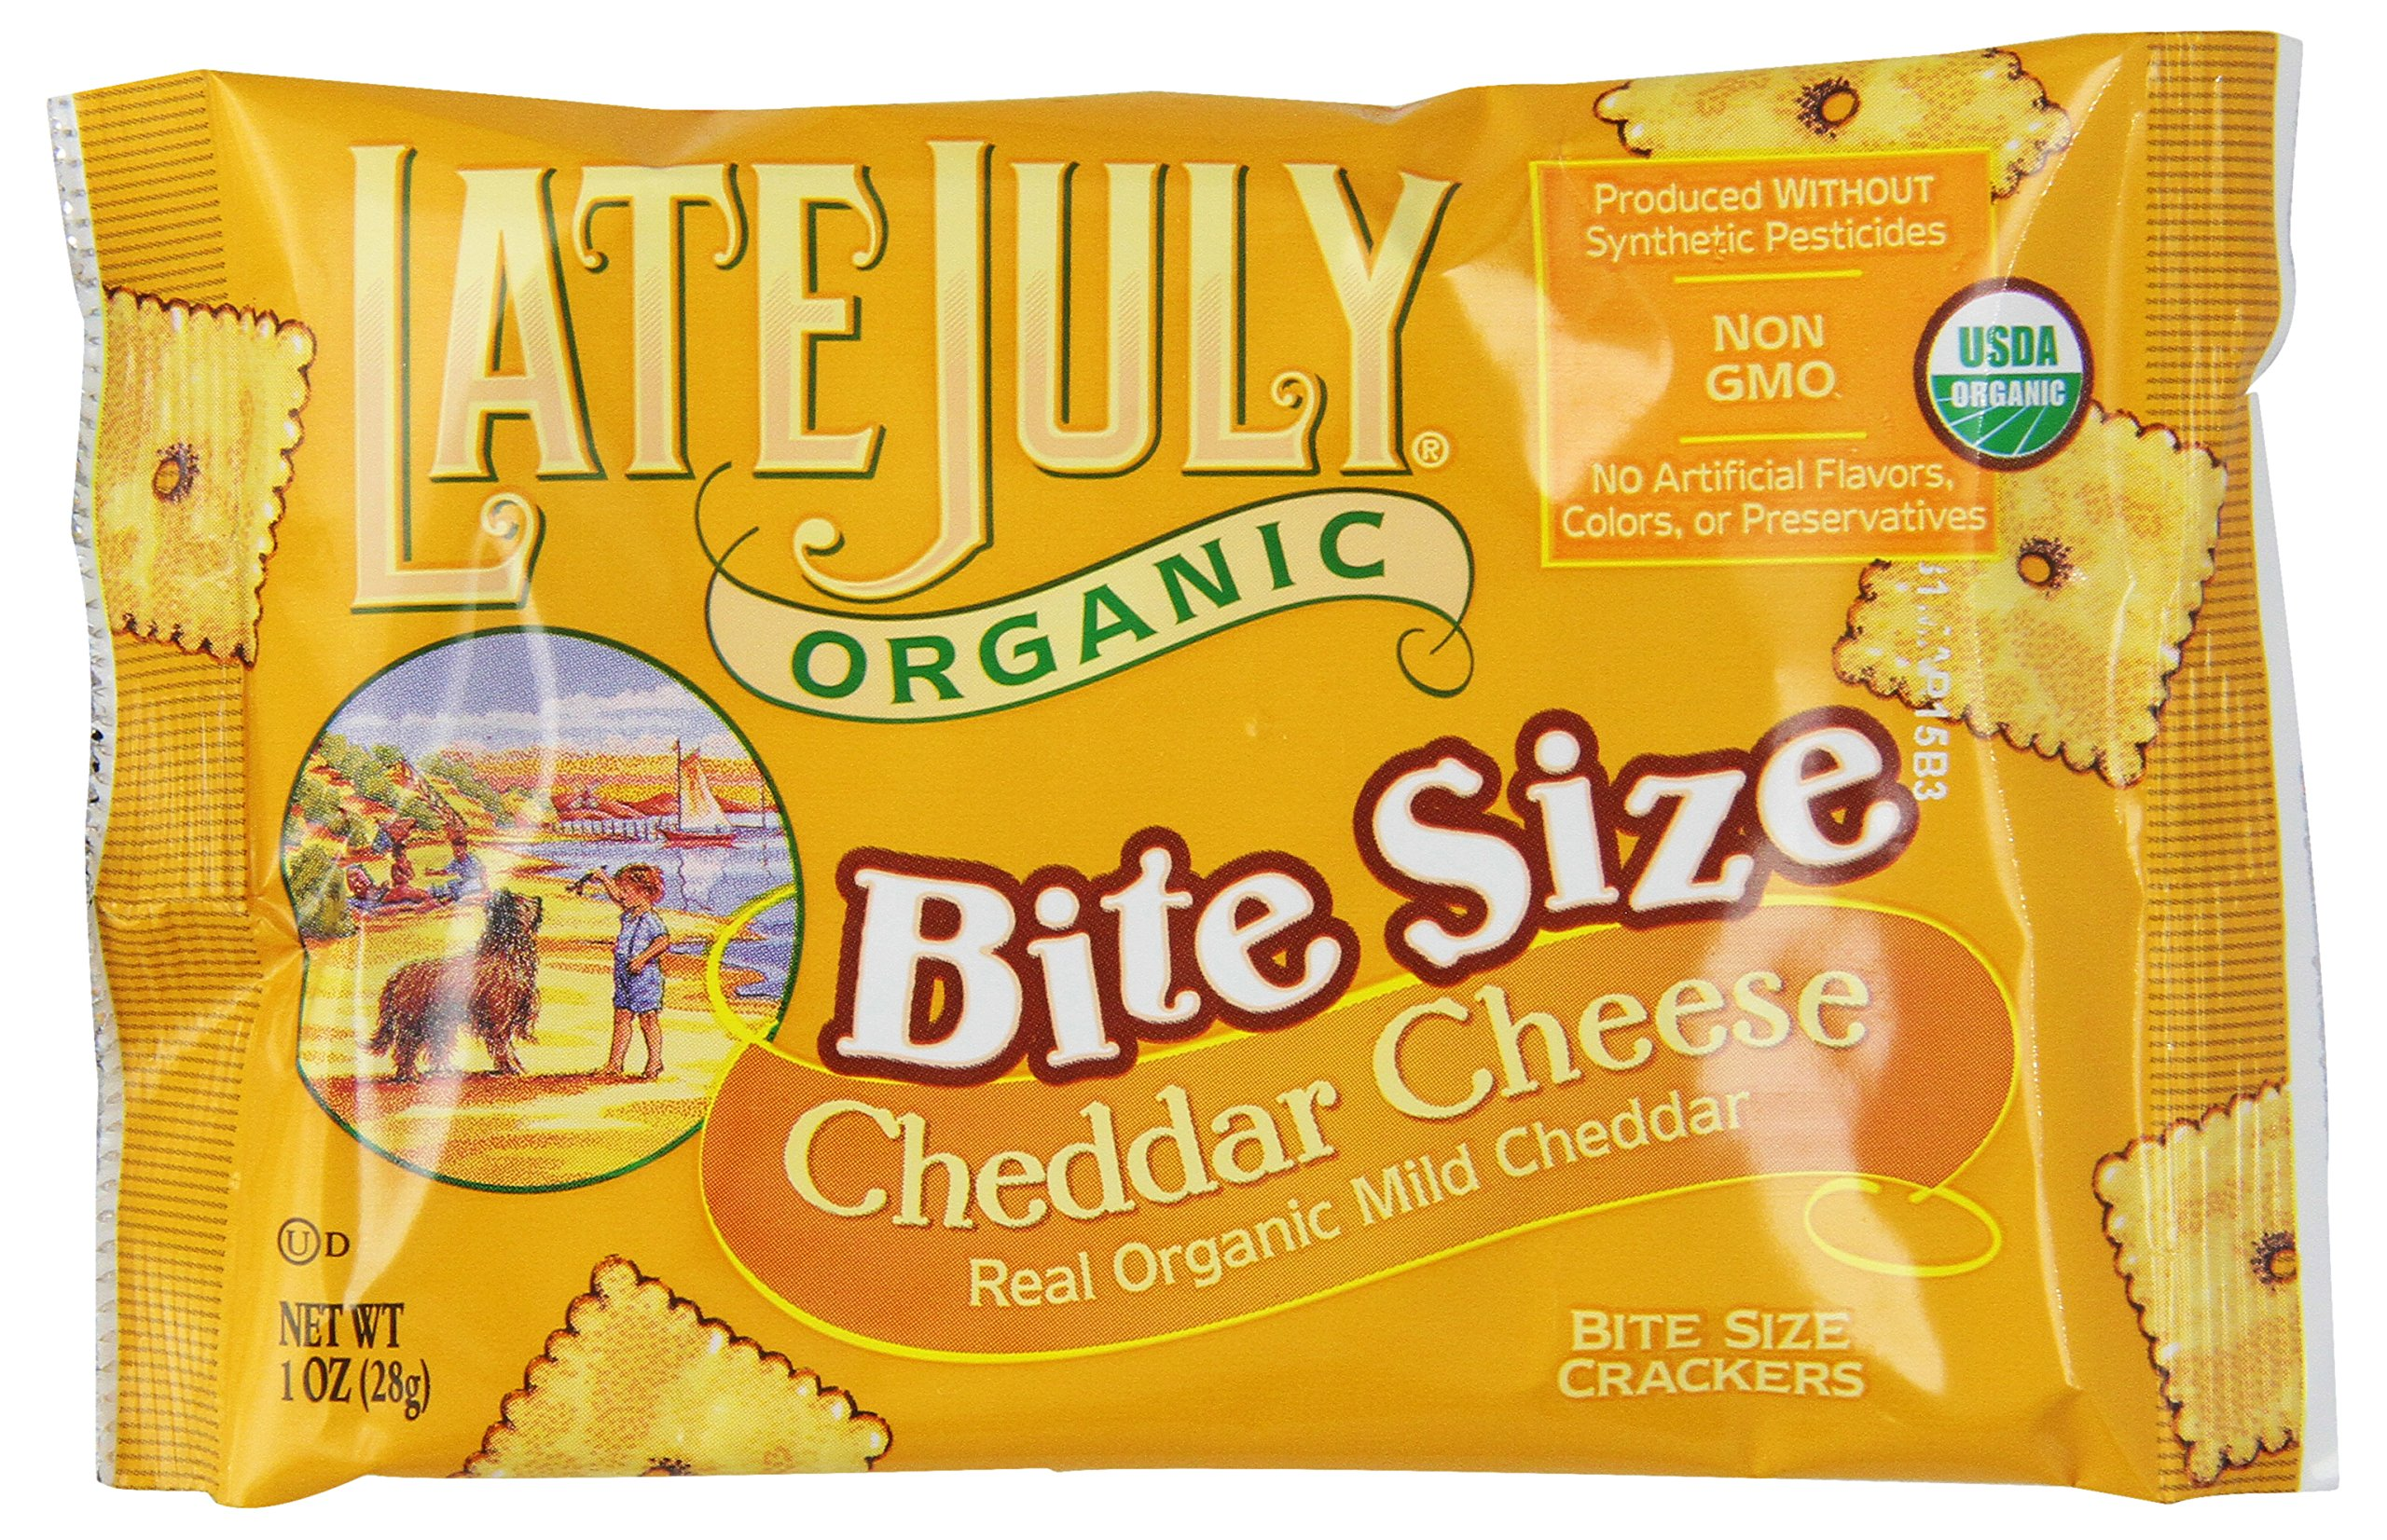 Late July Organic Bite Size Cheddar Cheese Crackers, 8-Count Boxes, 8 oz,  (Pack of 4)